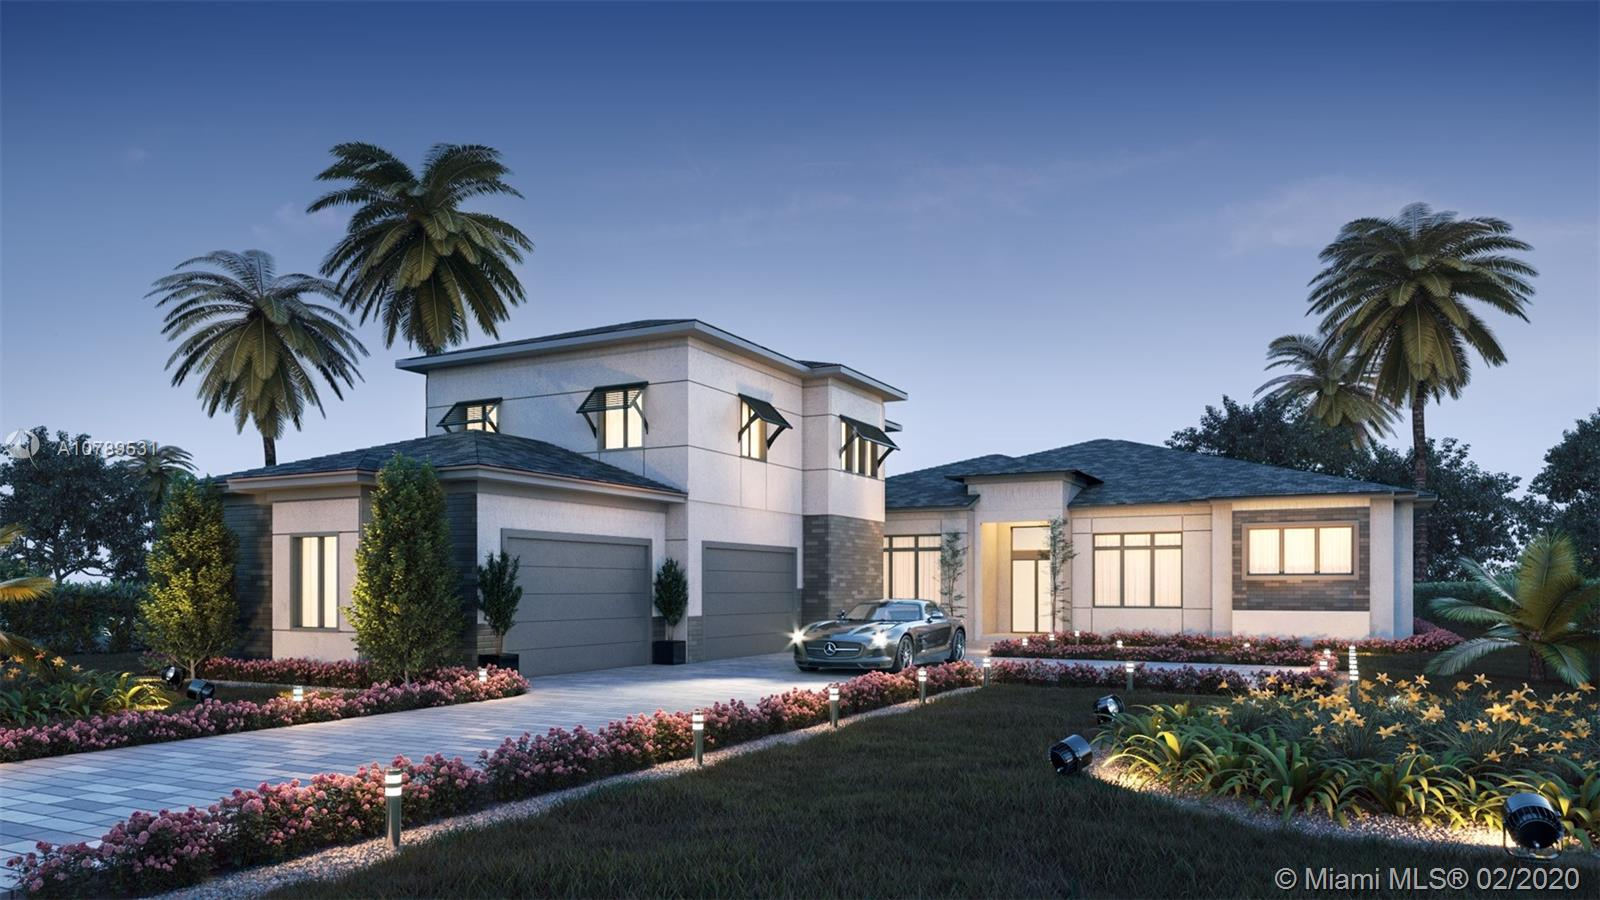 NEW CONSTRUCTION in the prestigious community of Plantation Acres. This home is situated on an acre of land for total privacy. The luxurious details are consistent from the inside out. Transitional modern architecture outside and modern finishes inside. The front doors open to an expansive great room overlooking a custom pool and impressive backyard experience complete with a summer kitchen. Volume ceilings with decorative lighting create a elegant setting in every room including hallways. The oversized garage fits larger trucks & SUV's with room for storage. All of the finishes and designs are the top of the line. NEW CONSTRUCTION! BROOKMAN-FELS! NEW CONSTRUCTION!